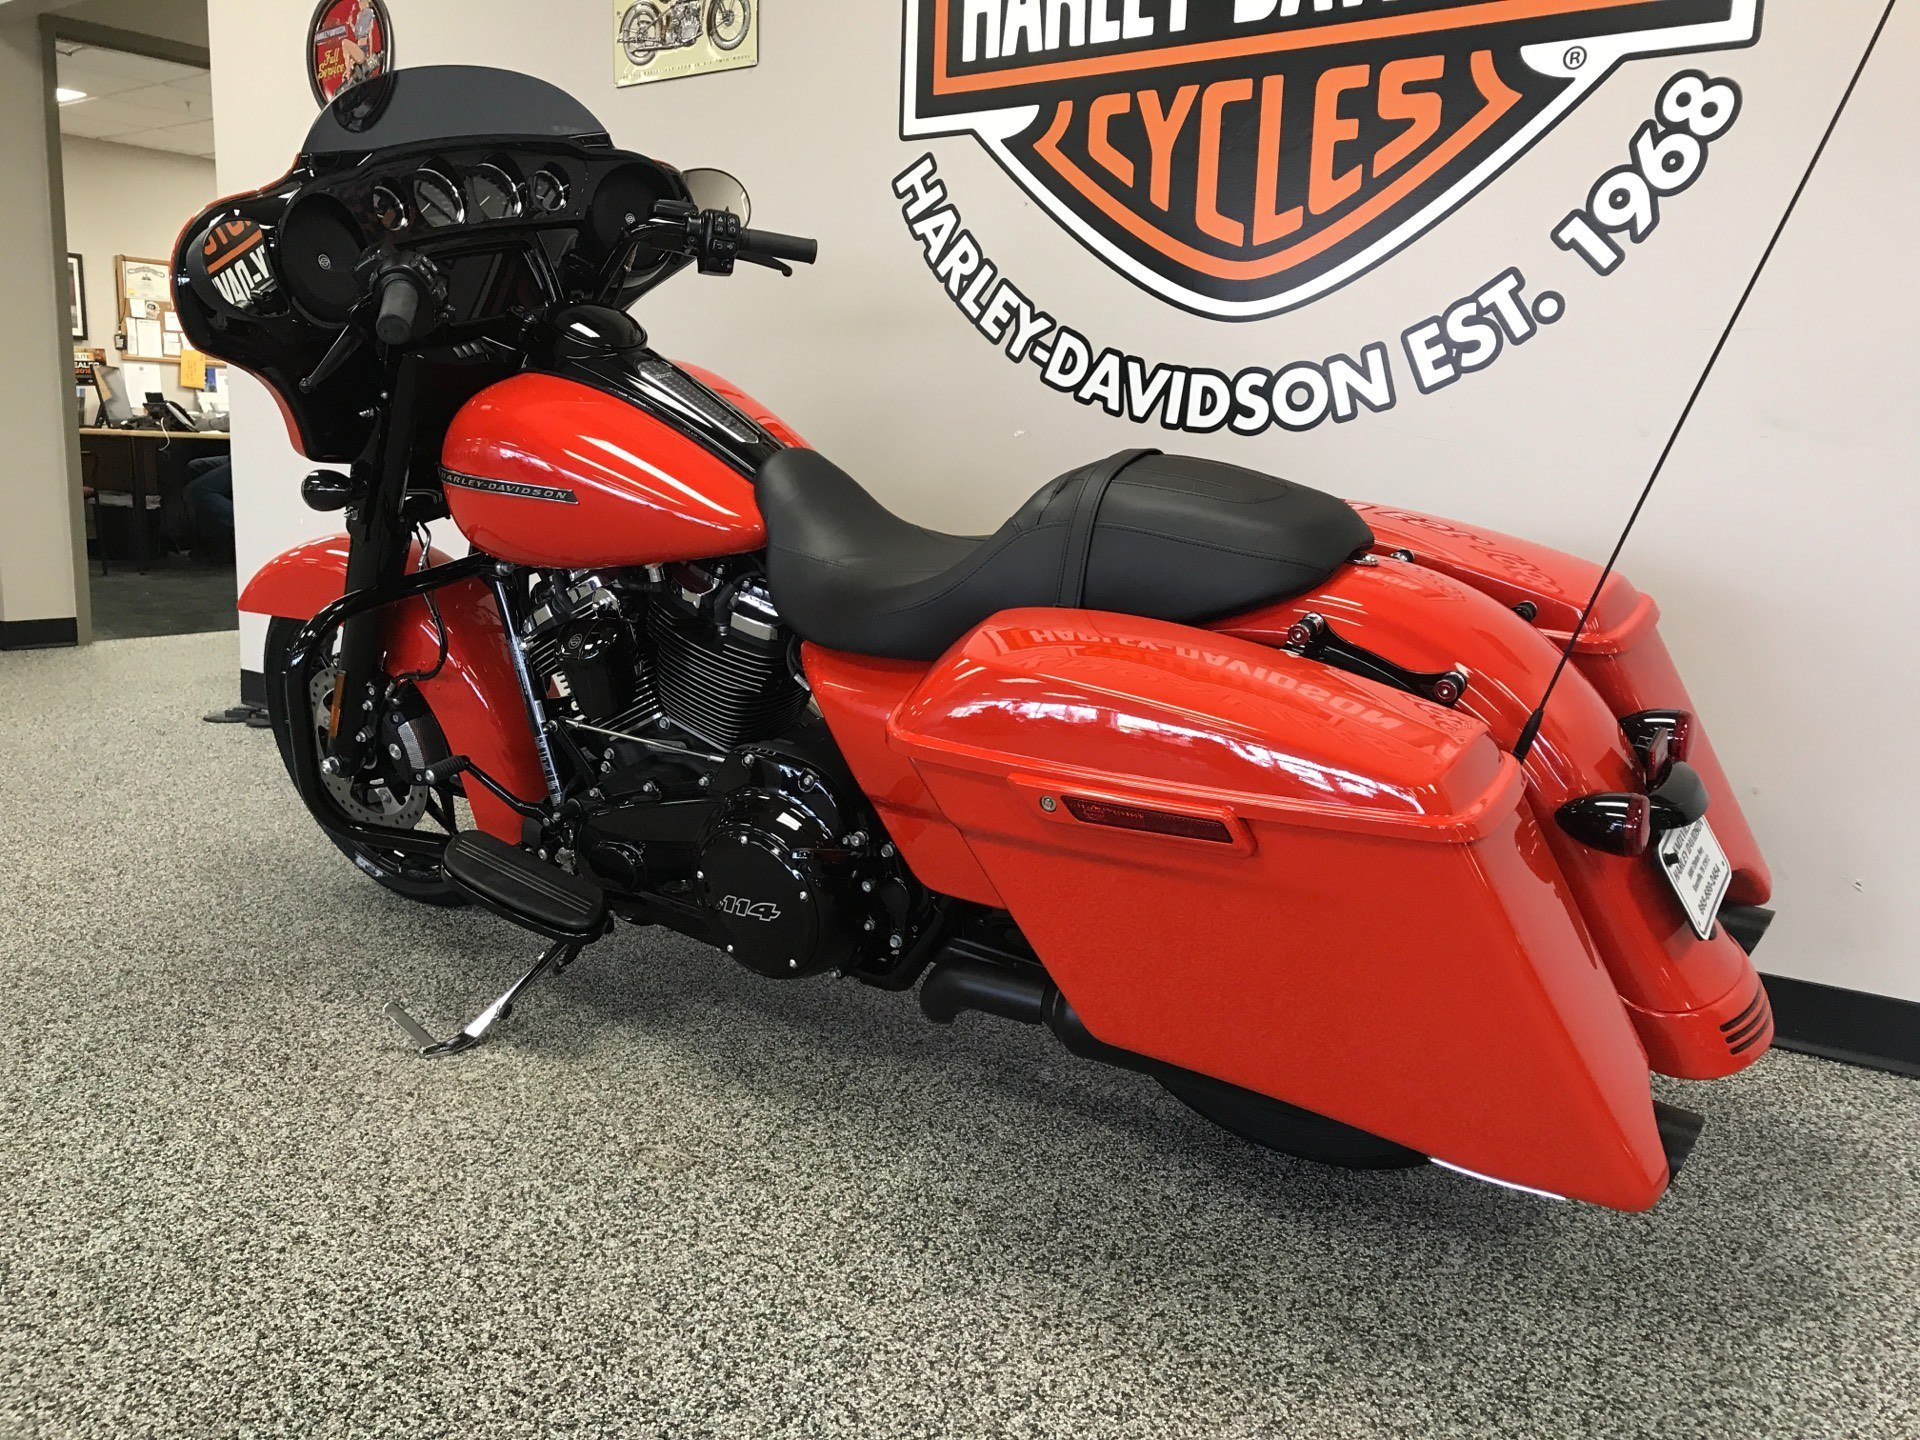 2020 Harley-Davidson STREET GLIDE SPECIAL in Knoxville, Tennessee - Photo 21